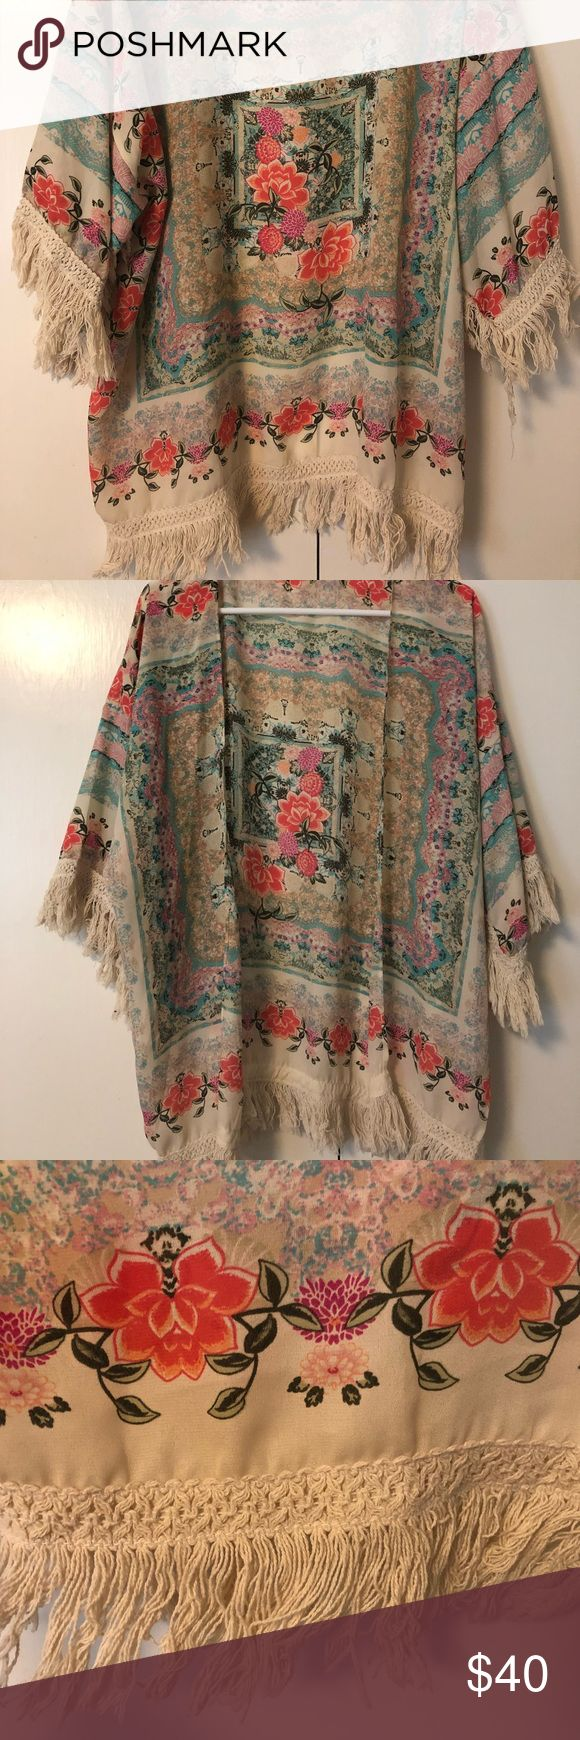 Boho chic kimono with frills This amazing boho kimono has only been worn 2 times. It has super cute full detail on the sleeves as well as around the bottom. The fun floral print and lightweight fabric makes for the perfect piece to complete a simple outfit or use as a swimsuit coverup. Tops Blouses